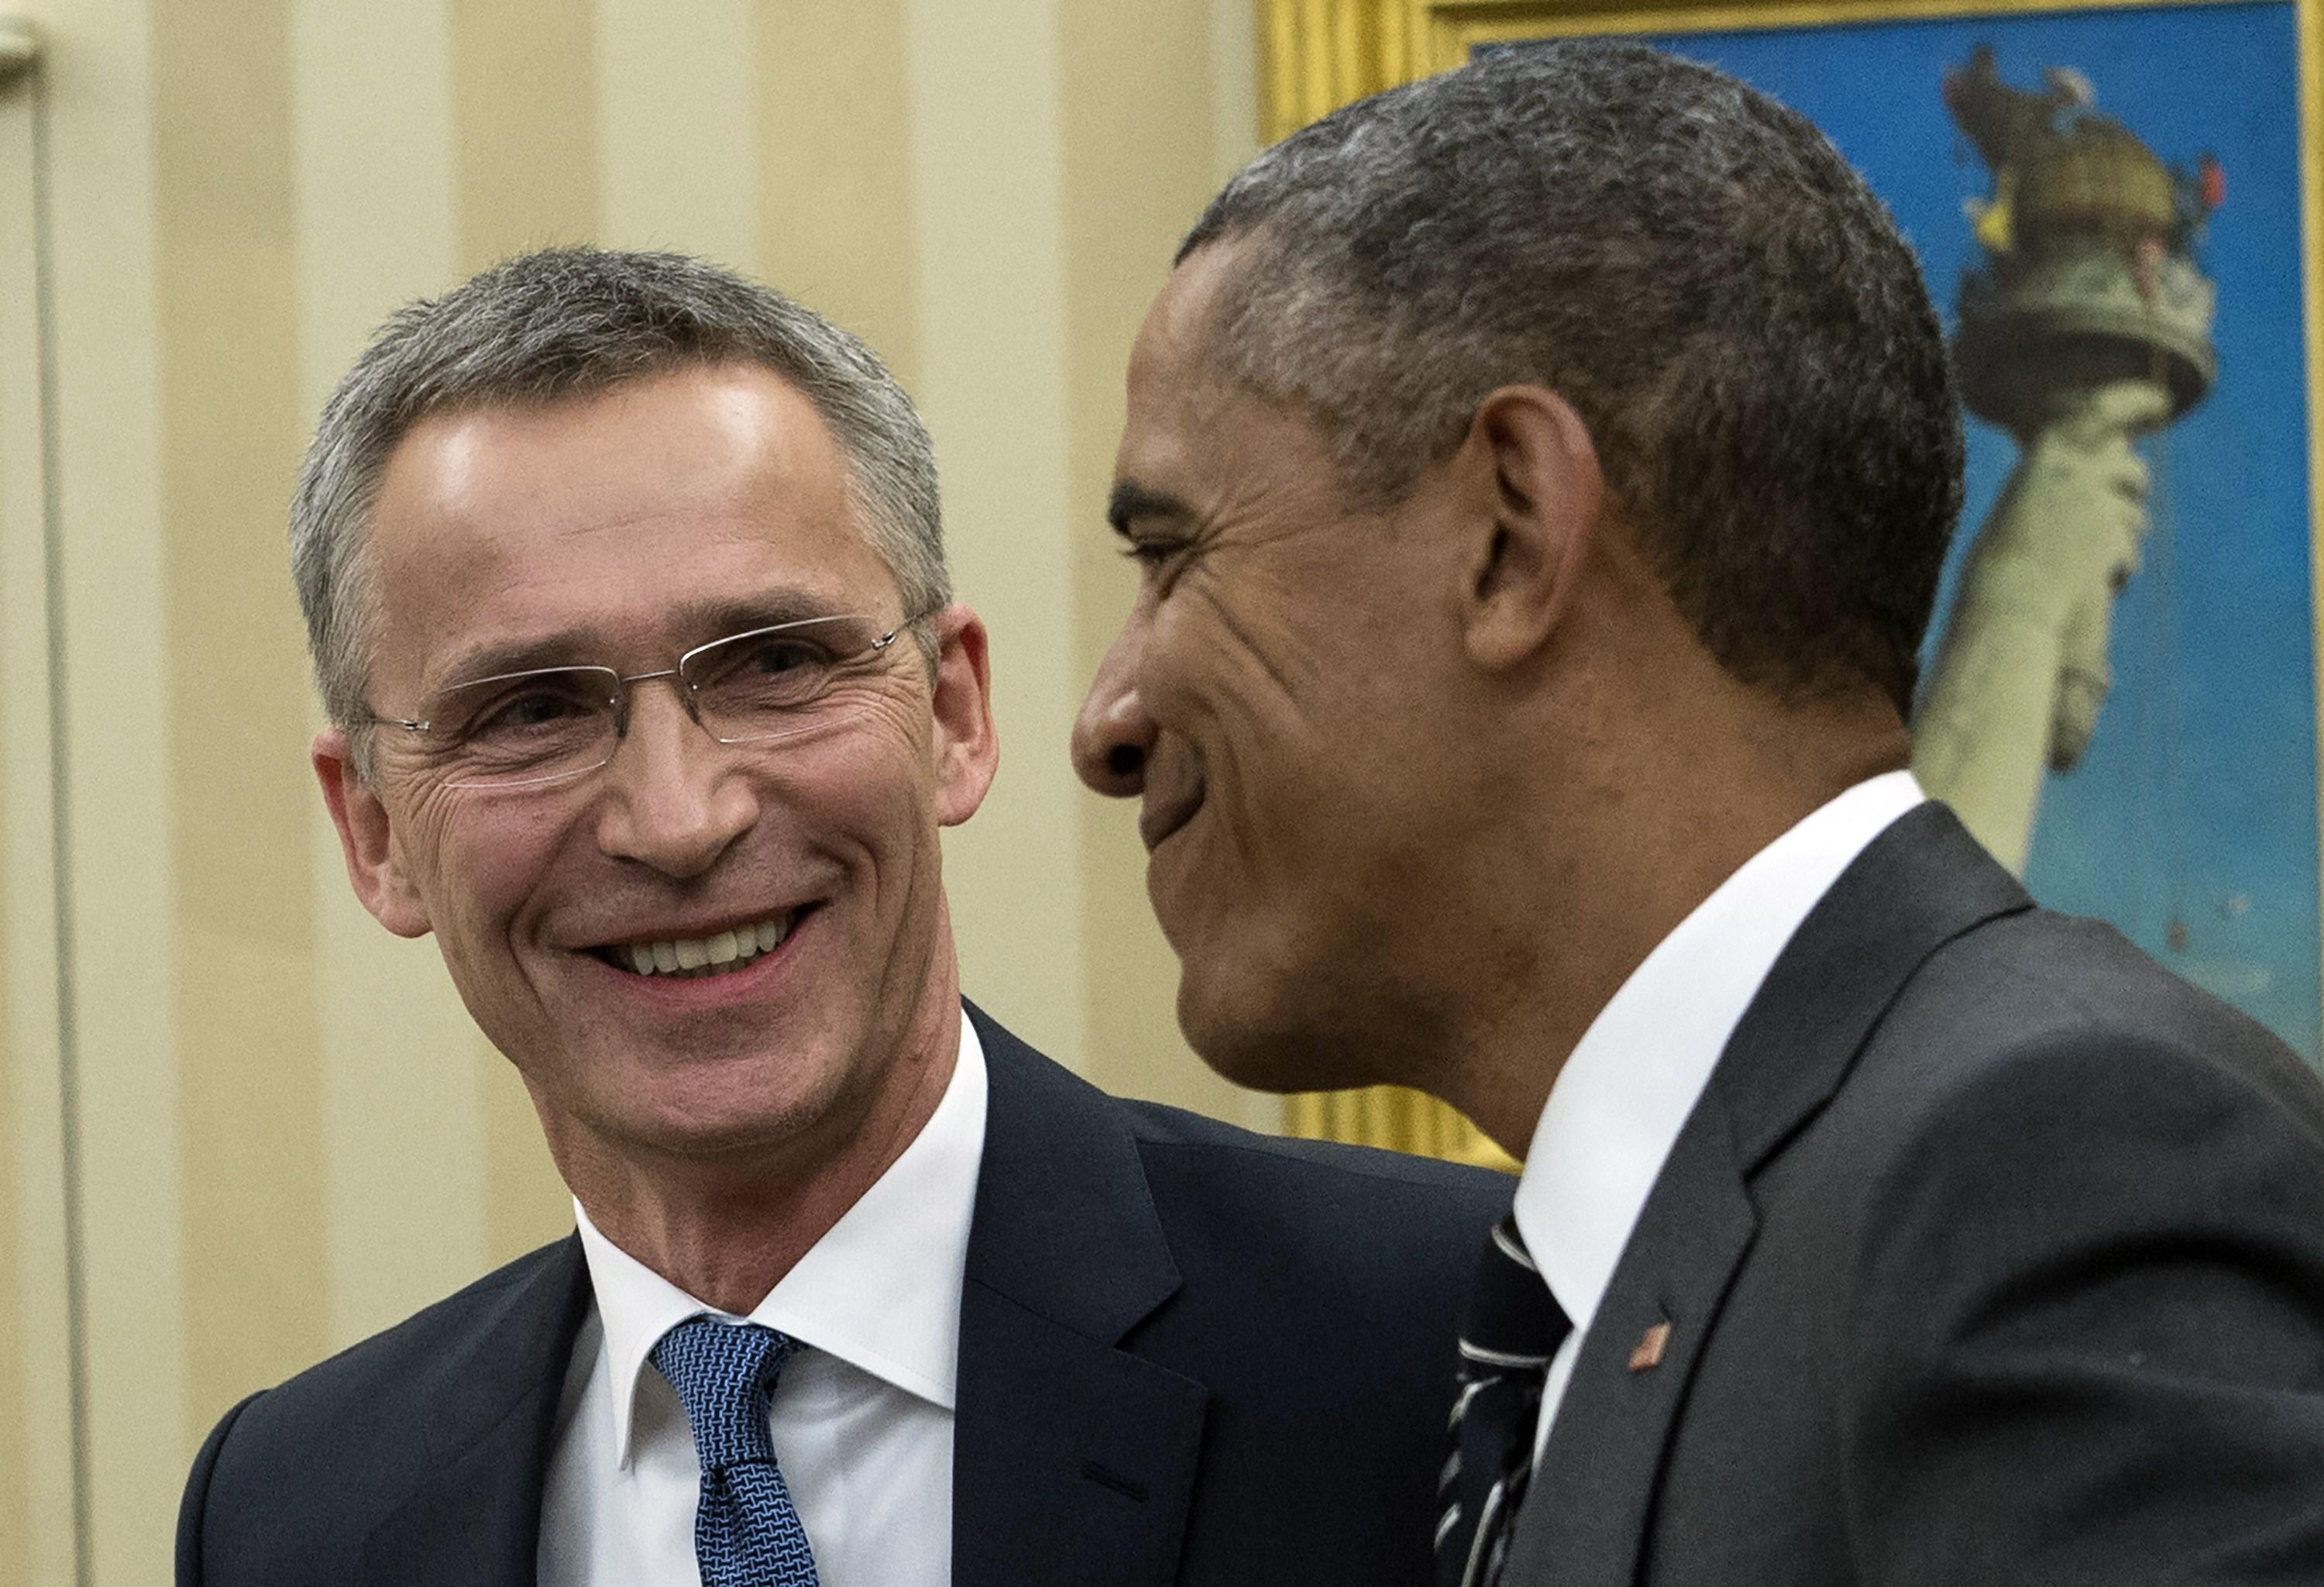 NATO chief reacts to Russian surprise military exercises